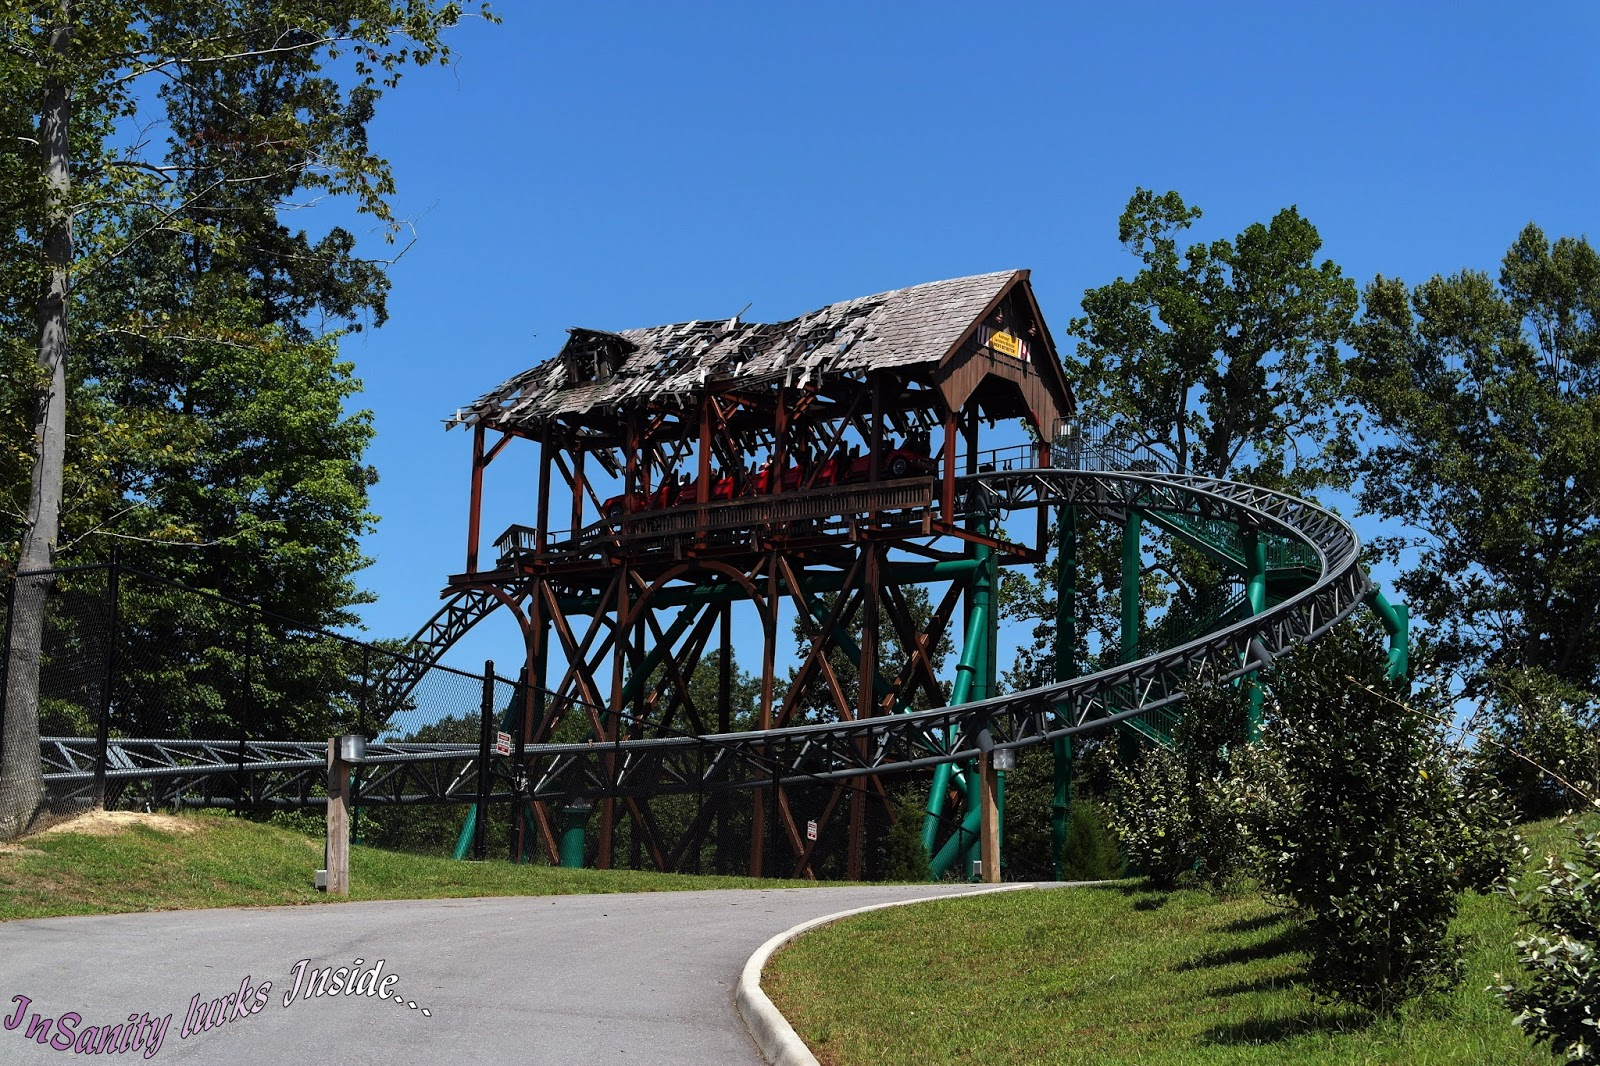 Insanity Lurks Inside Photo Post Ultimate Roller Coaster Tour Of Busch Gardens Williamsburg